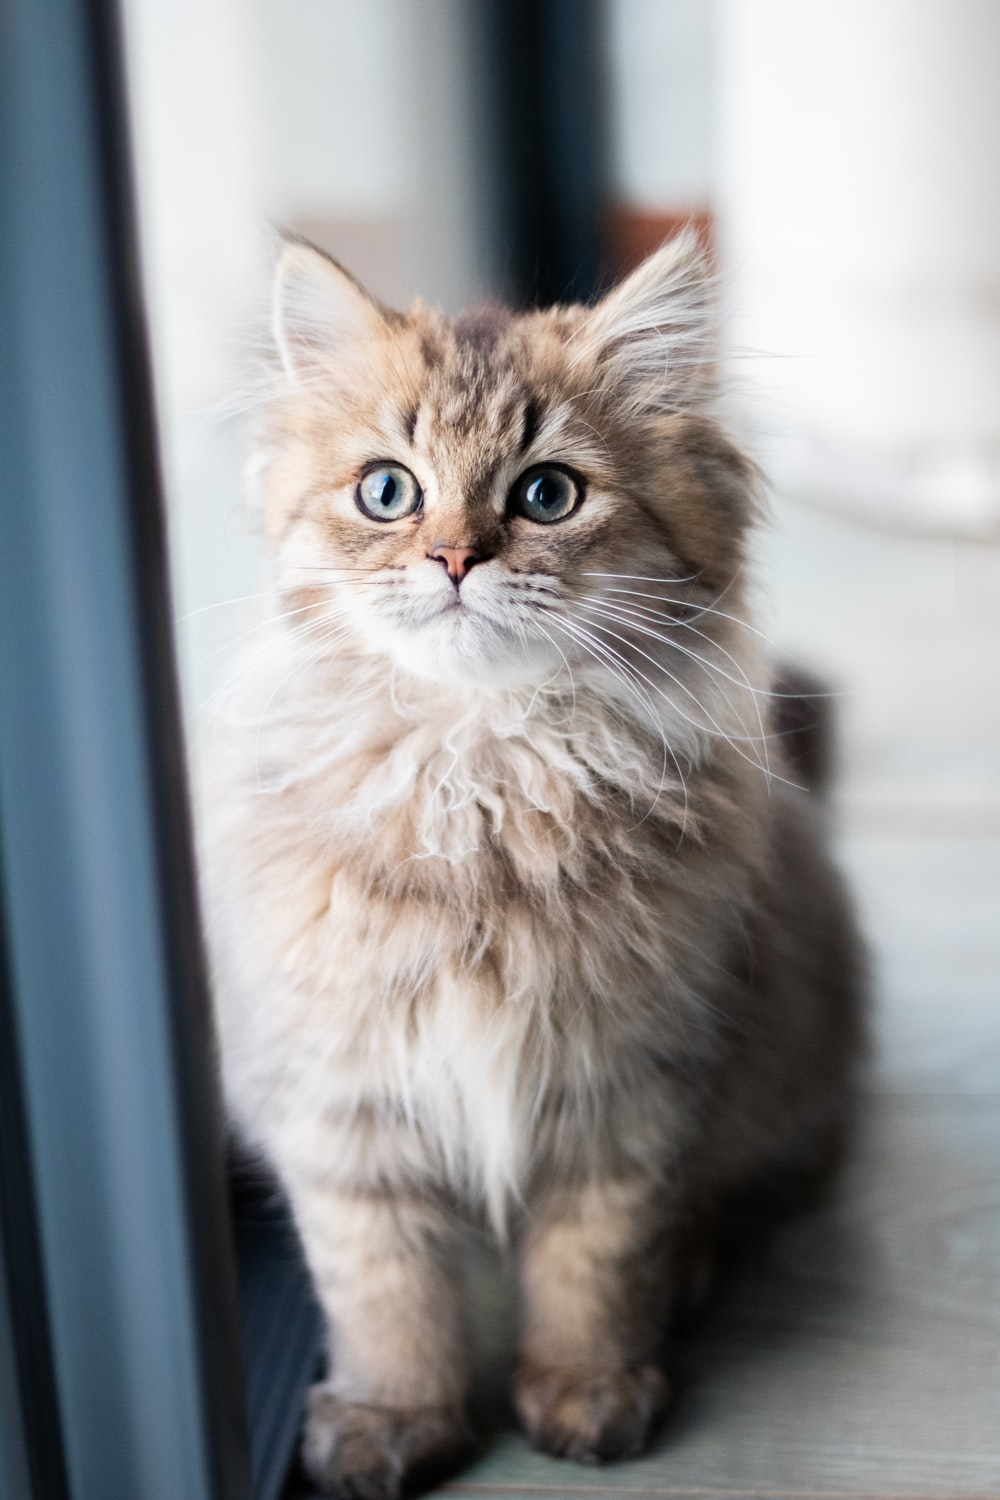 Cute Animals Pictures Download Free Images On Unsplash